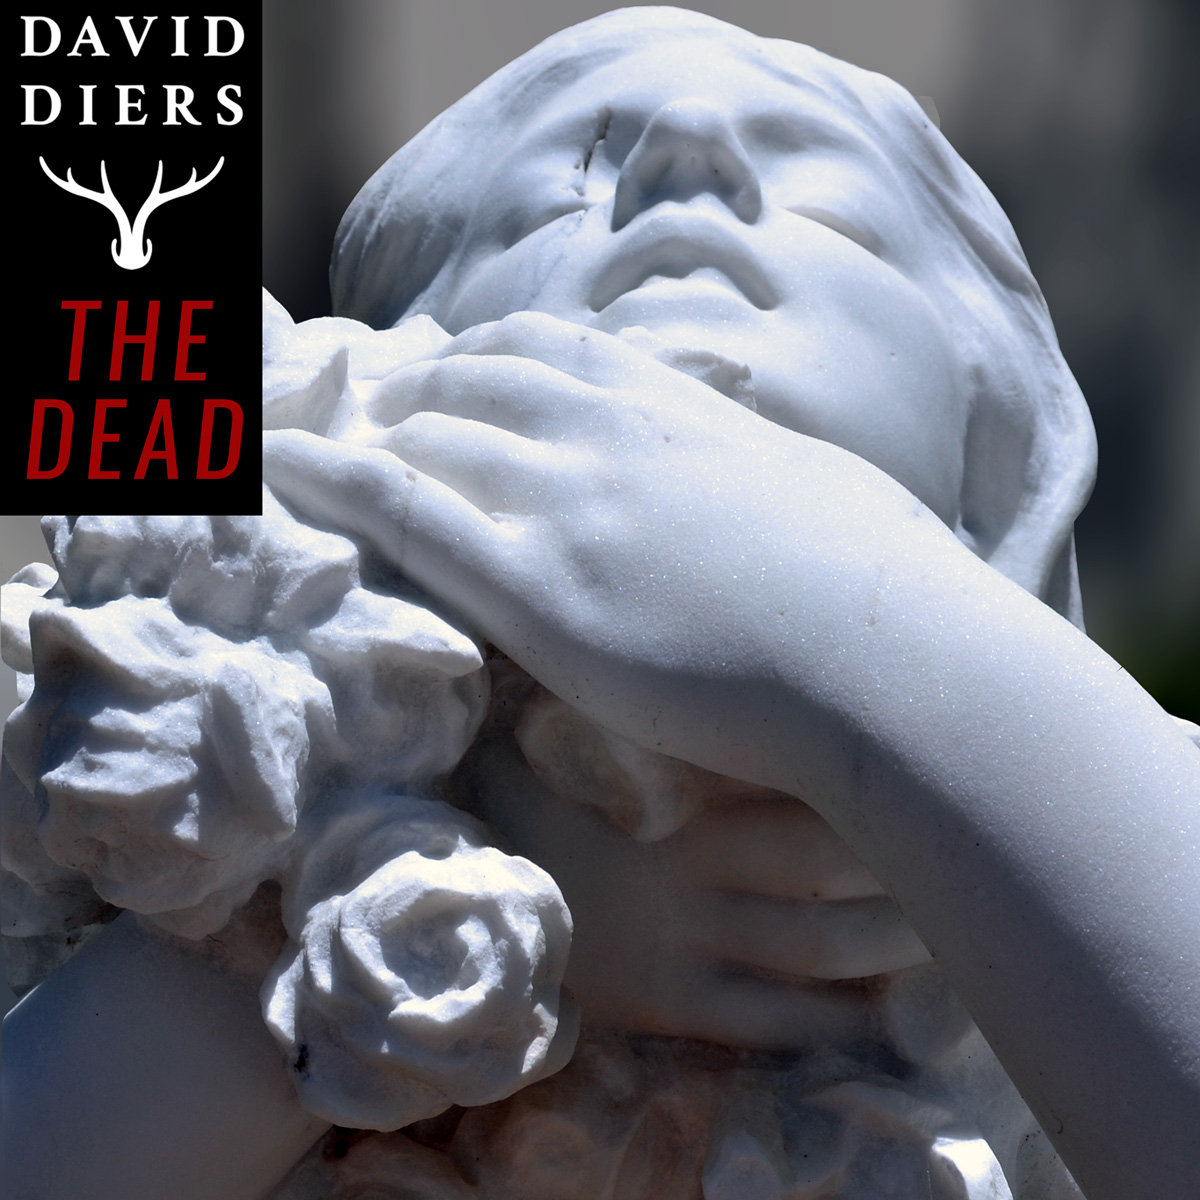 The Dead by David Diers